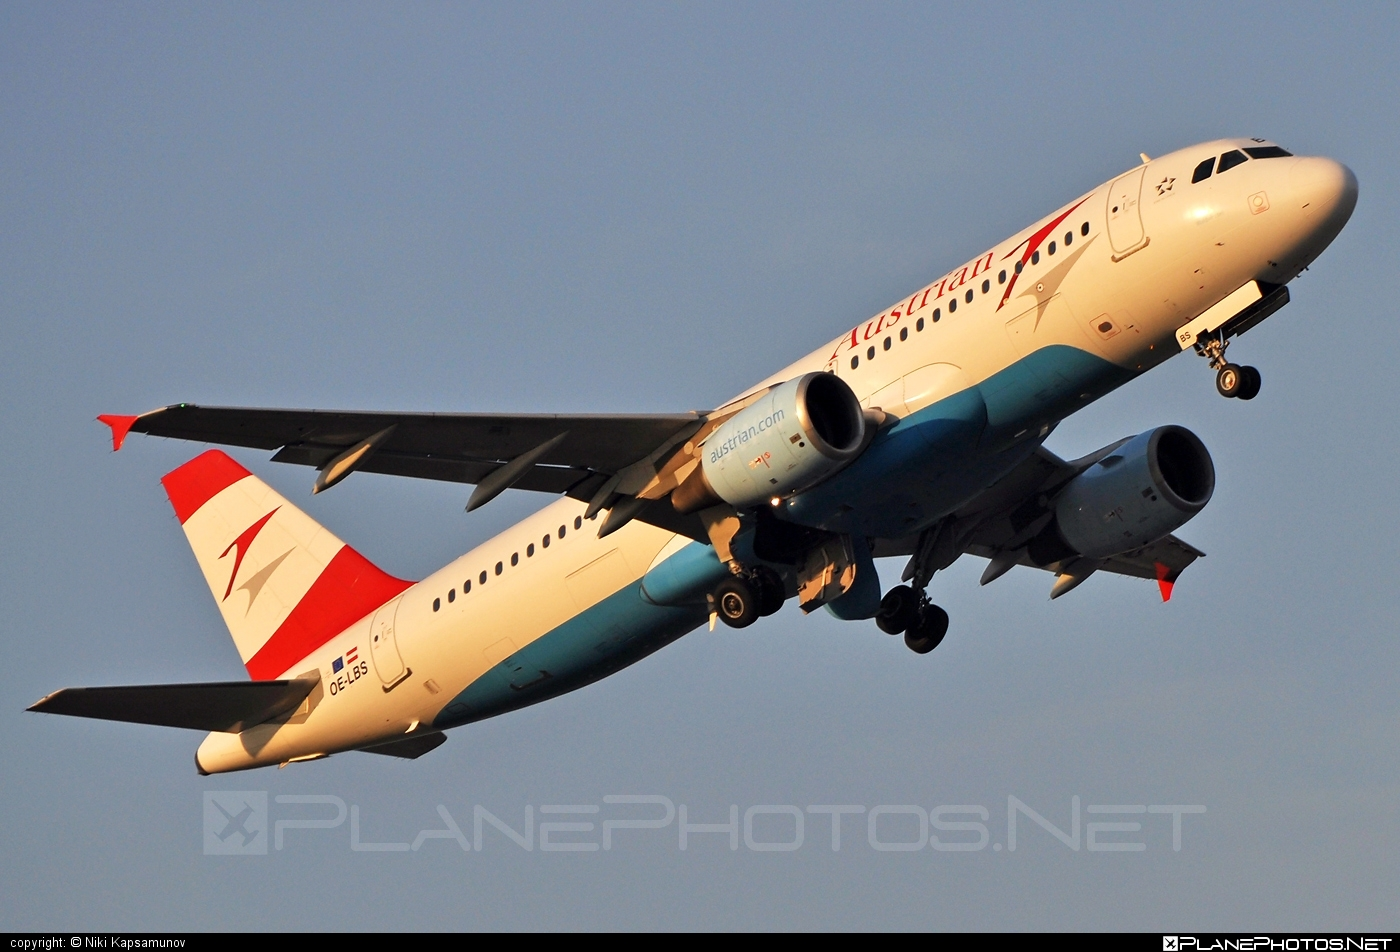 Airbus A320-214 - OE-LBS operated by Austrian Airlines #a320 #a320family #airbus #airbus320